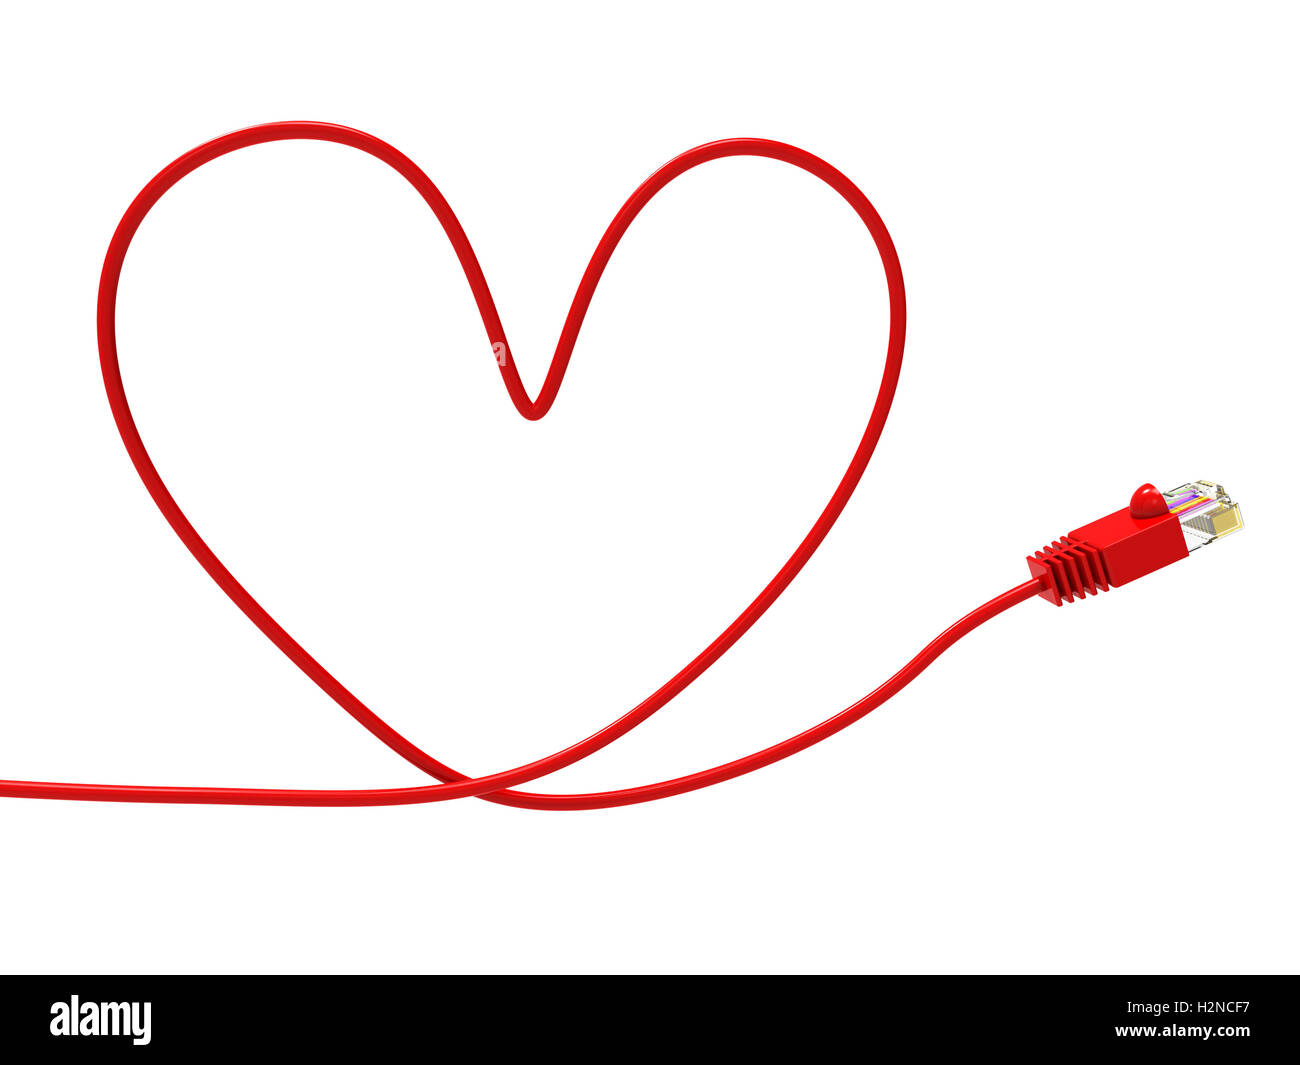 Love Internet Meaning World Wide Web And Valentine Day Stock Photo